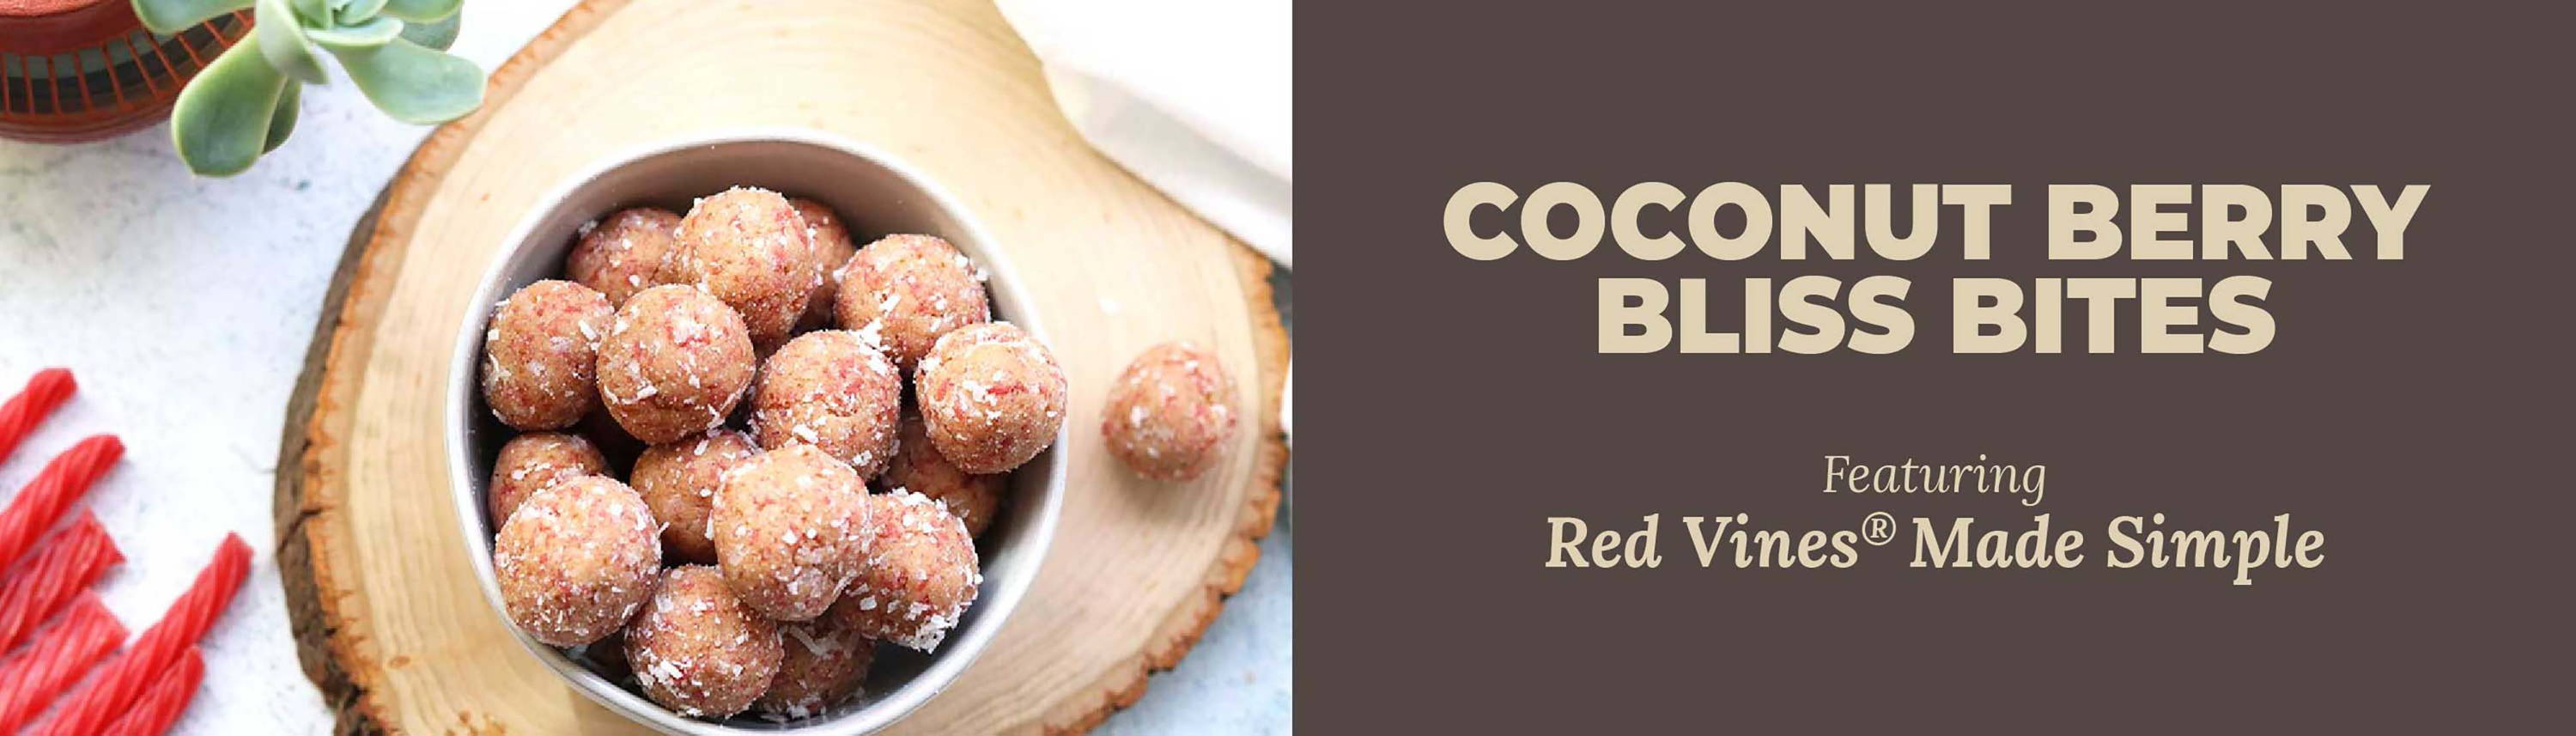 Coconut Berry Bliss Bites featuring Red Vines Made Simple